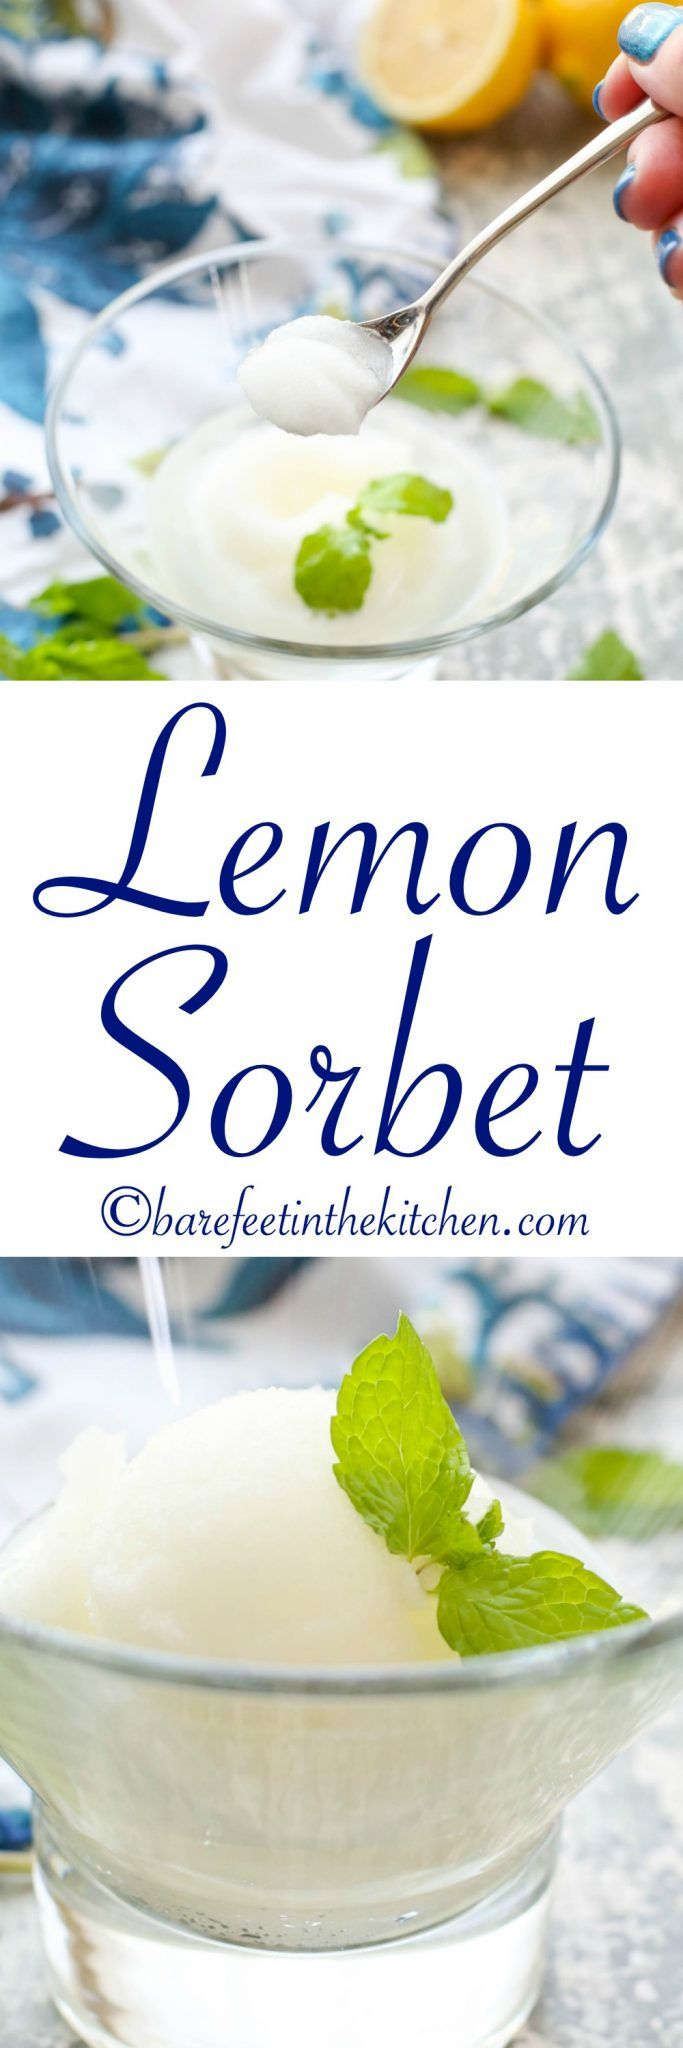 Lemon Sorbet is a refreshingly sweet way to end any meal! get the recipe at barefeetinthekitchen.com